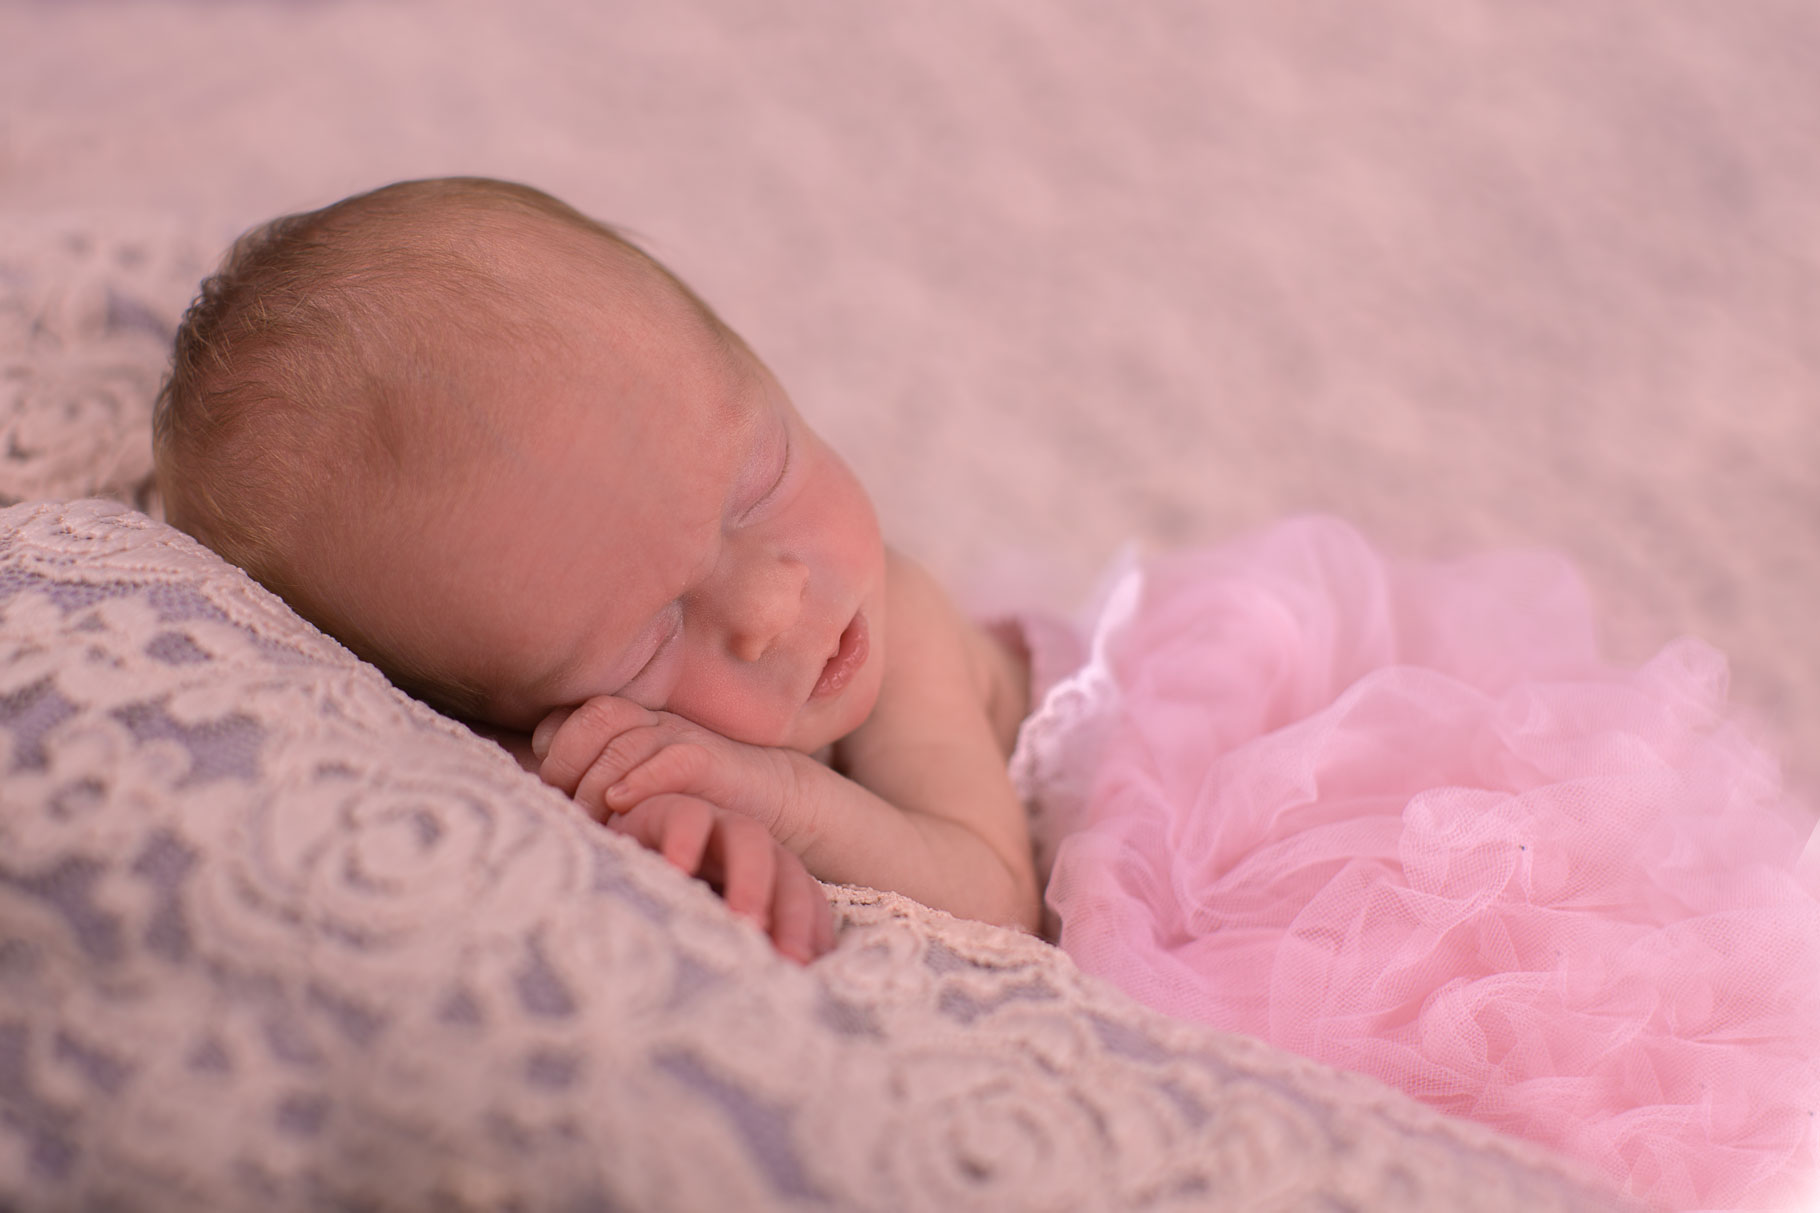 Image of baby girl asleep with her head on her hands